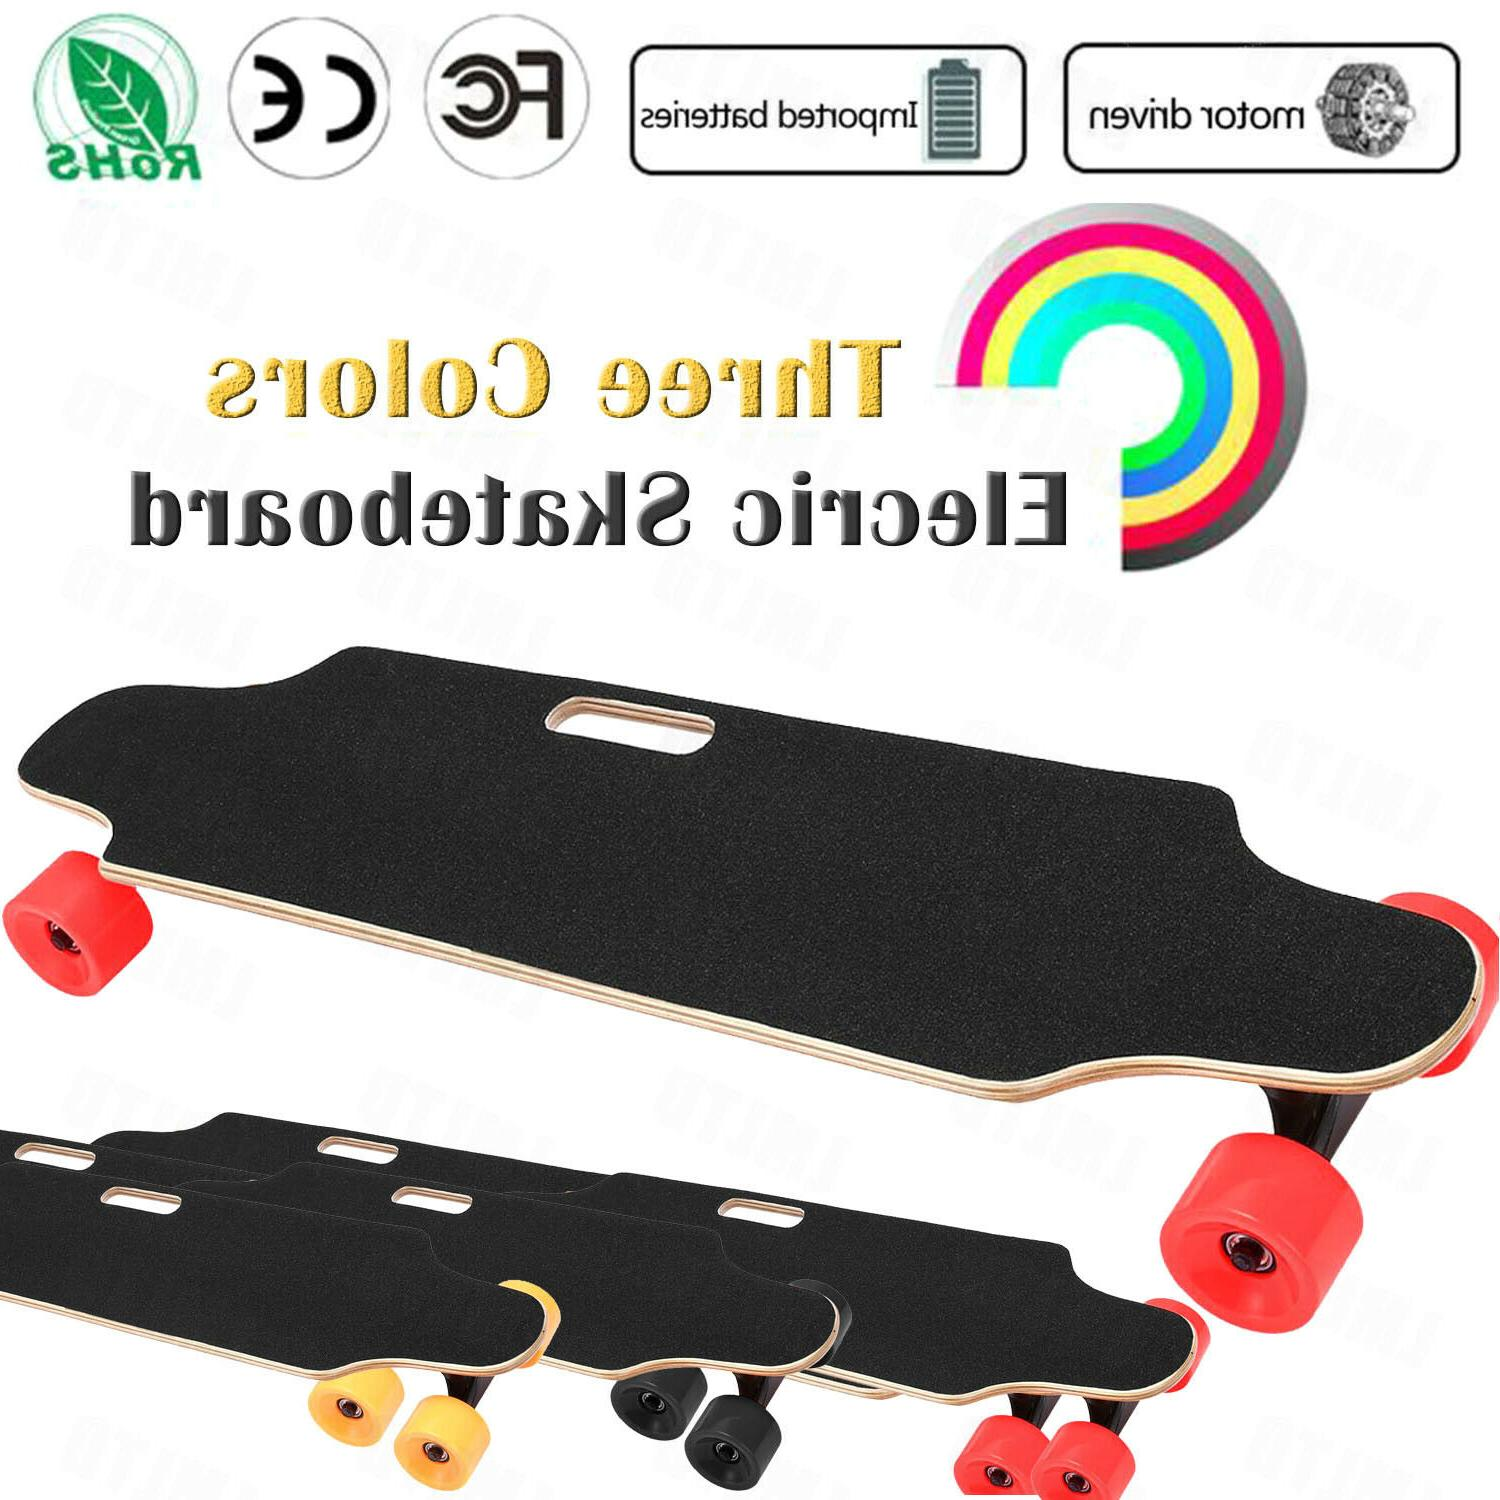 Aceshin Cruiser Maple Board Wireless +Remote